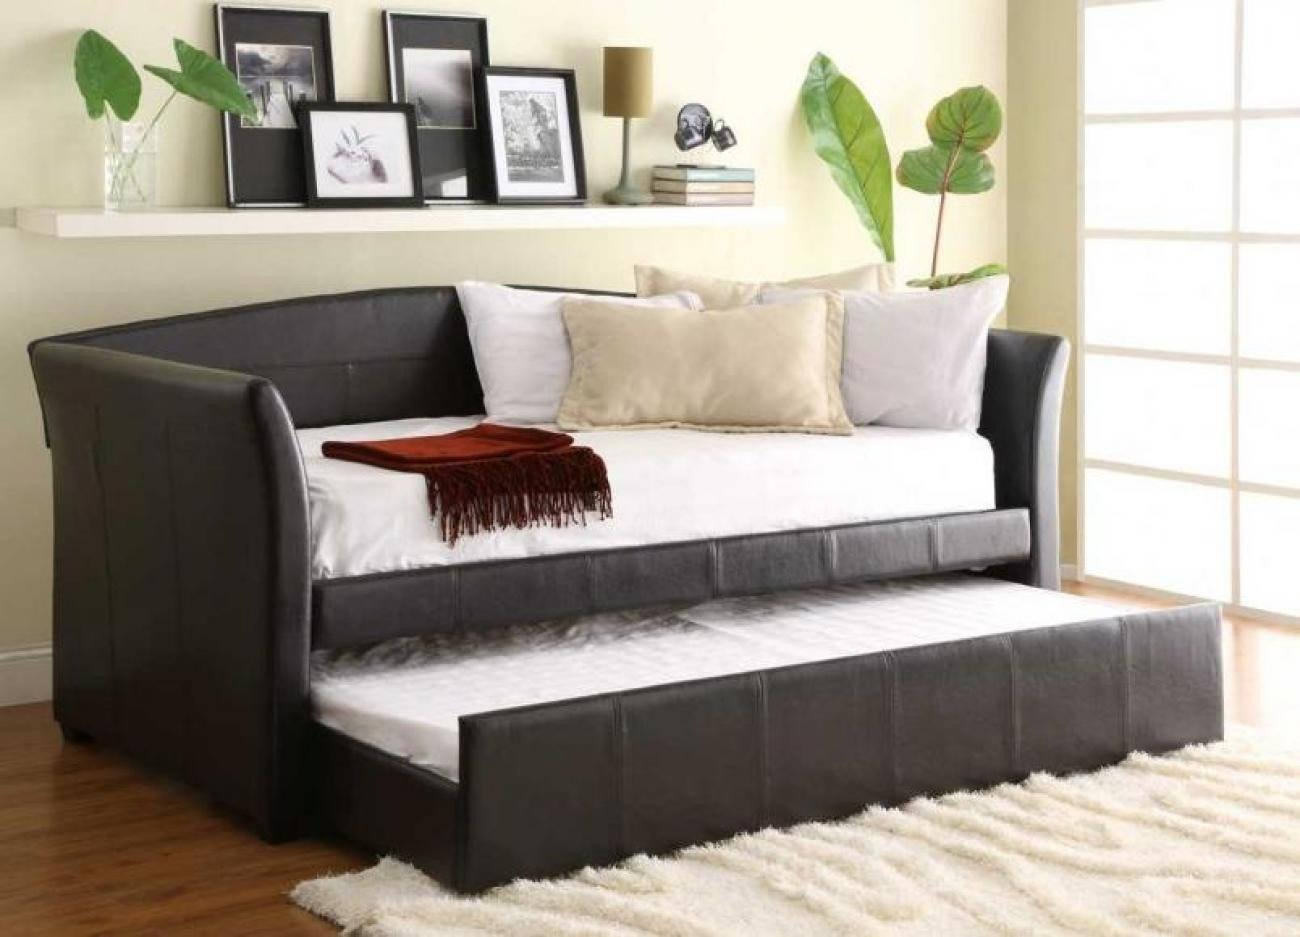 Comfortable Daybeds Living Room Luxury Appealing 5 fortable sofa Bed Models nowadays